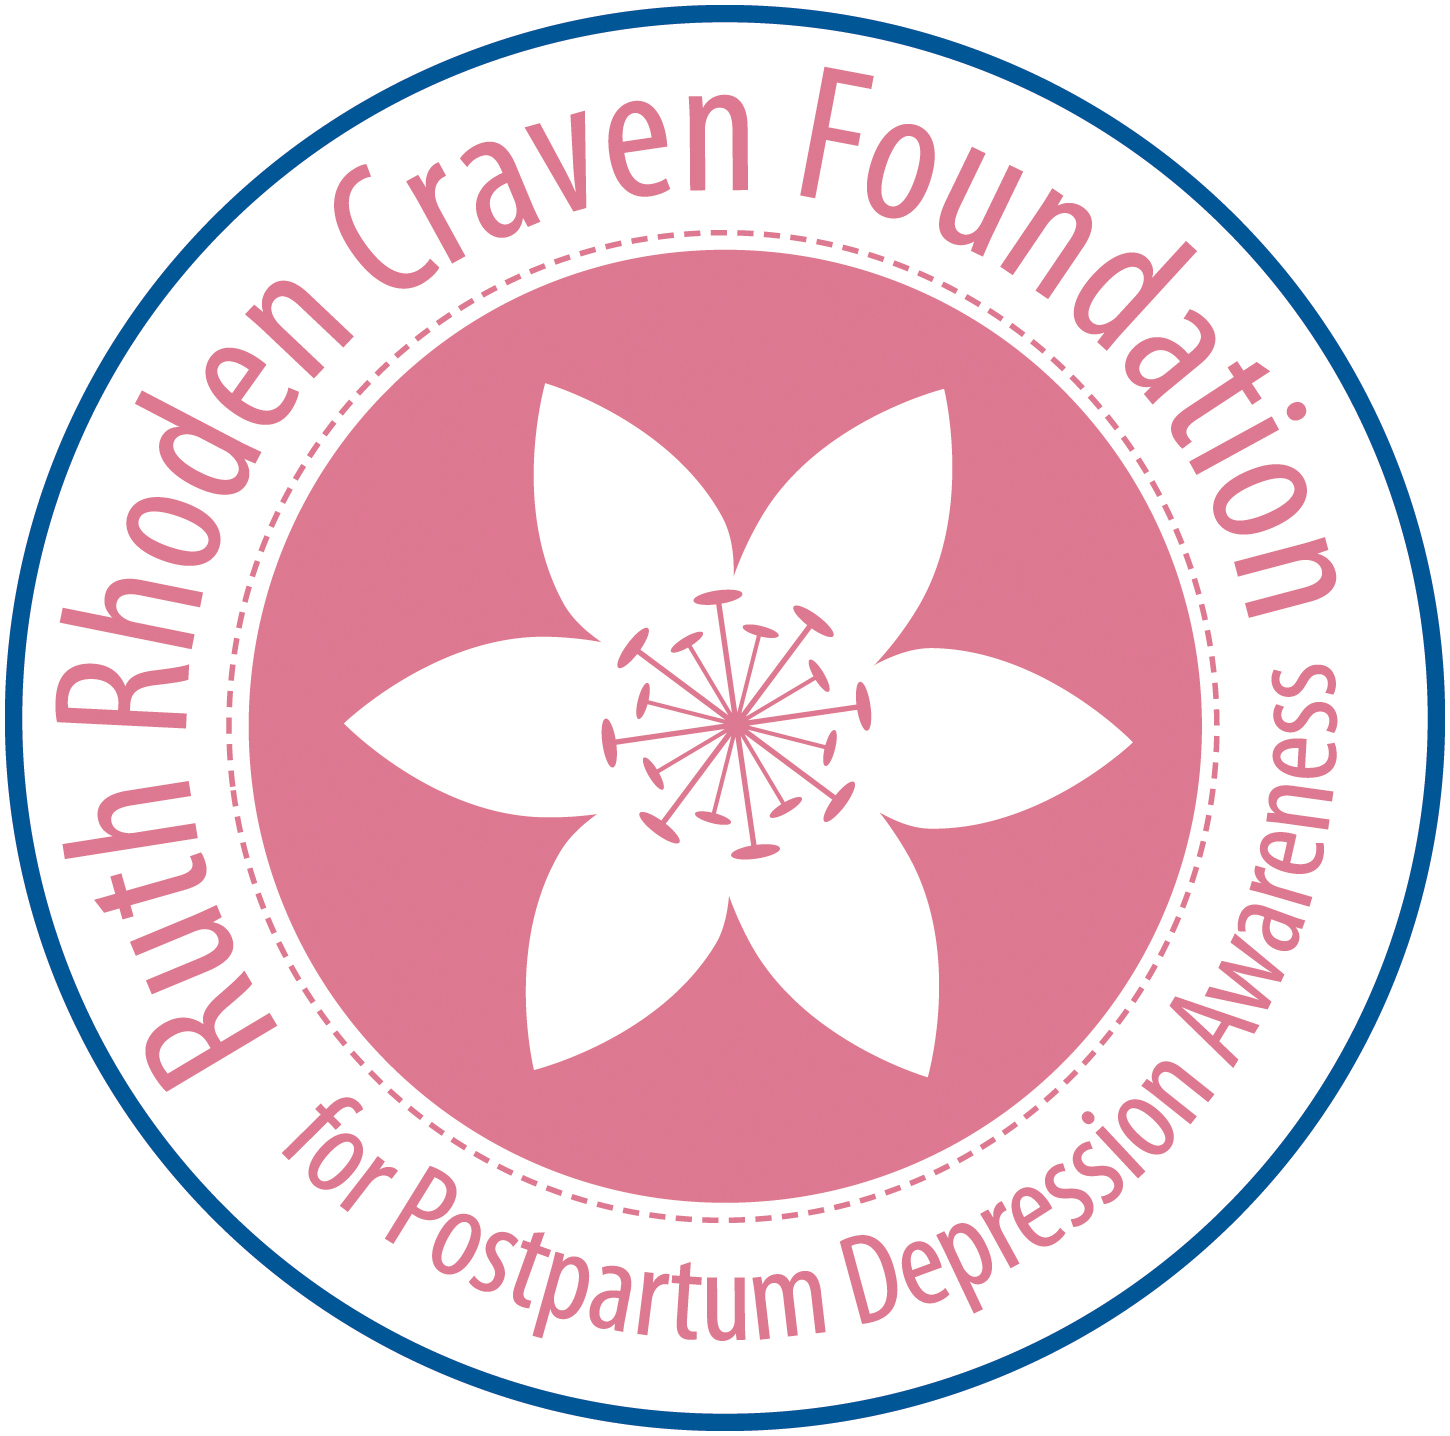 The logo of the Ruth Rhoden Craven Foundation.